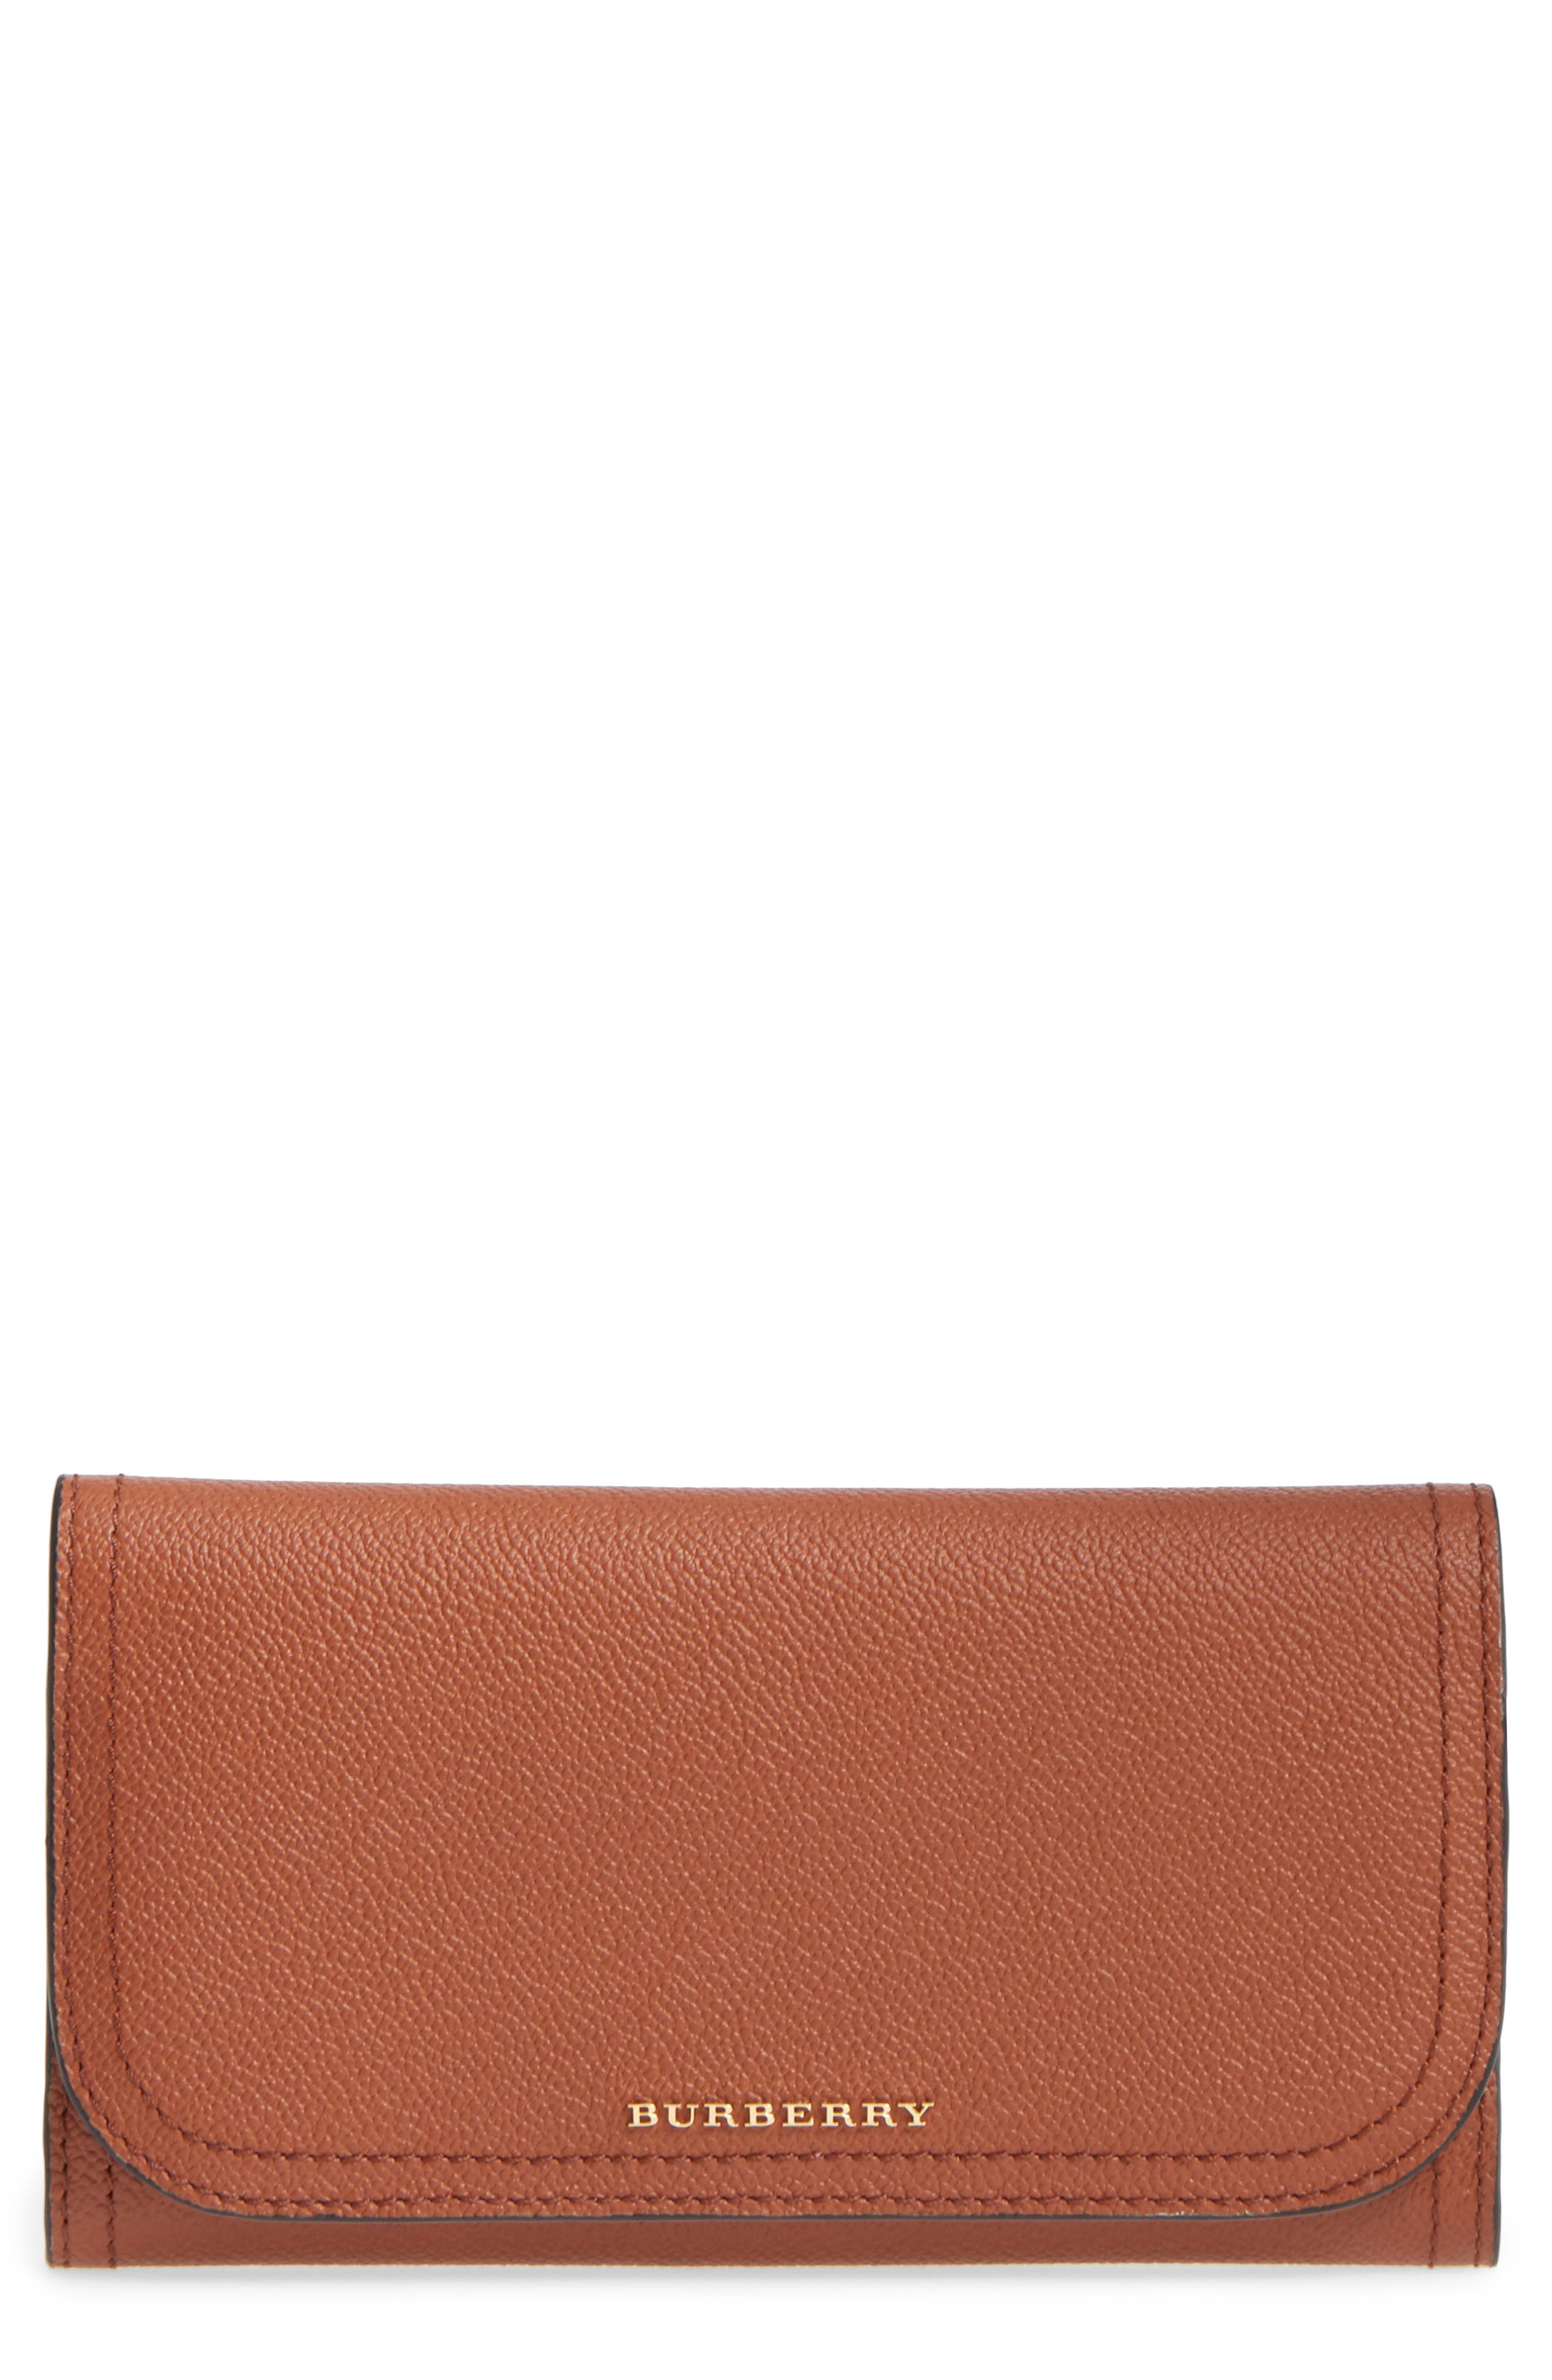 Kenton Leather Flap Wallet with Removable Check Card Case,                             Main thumbnail 1, color,                             200